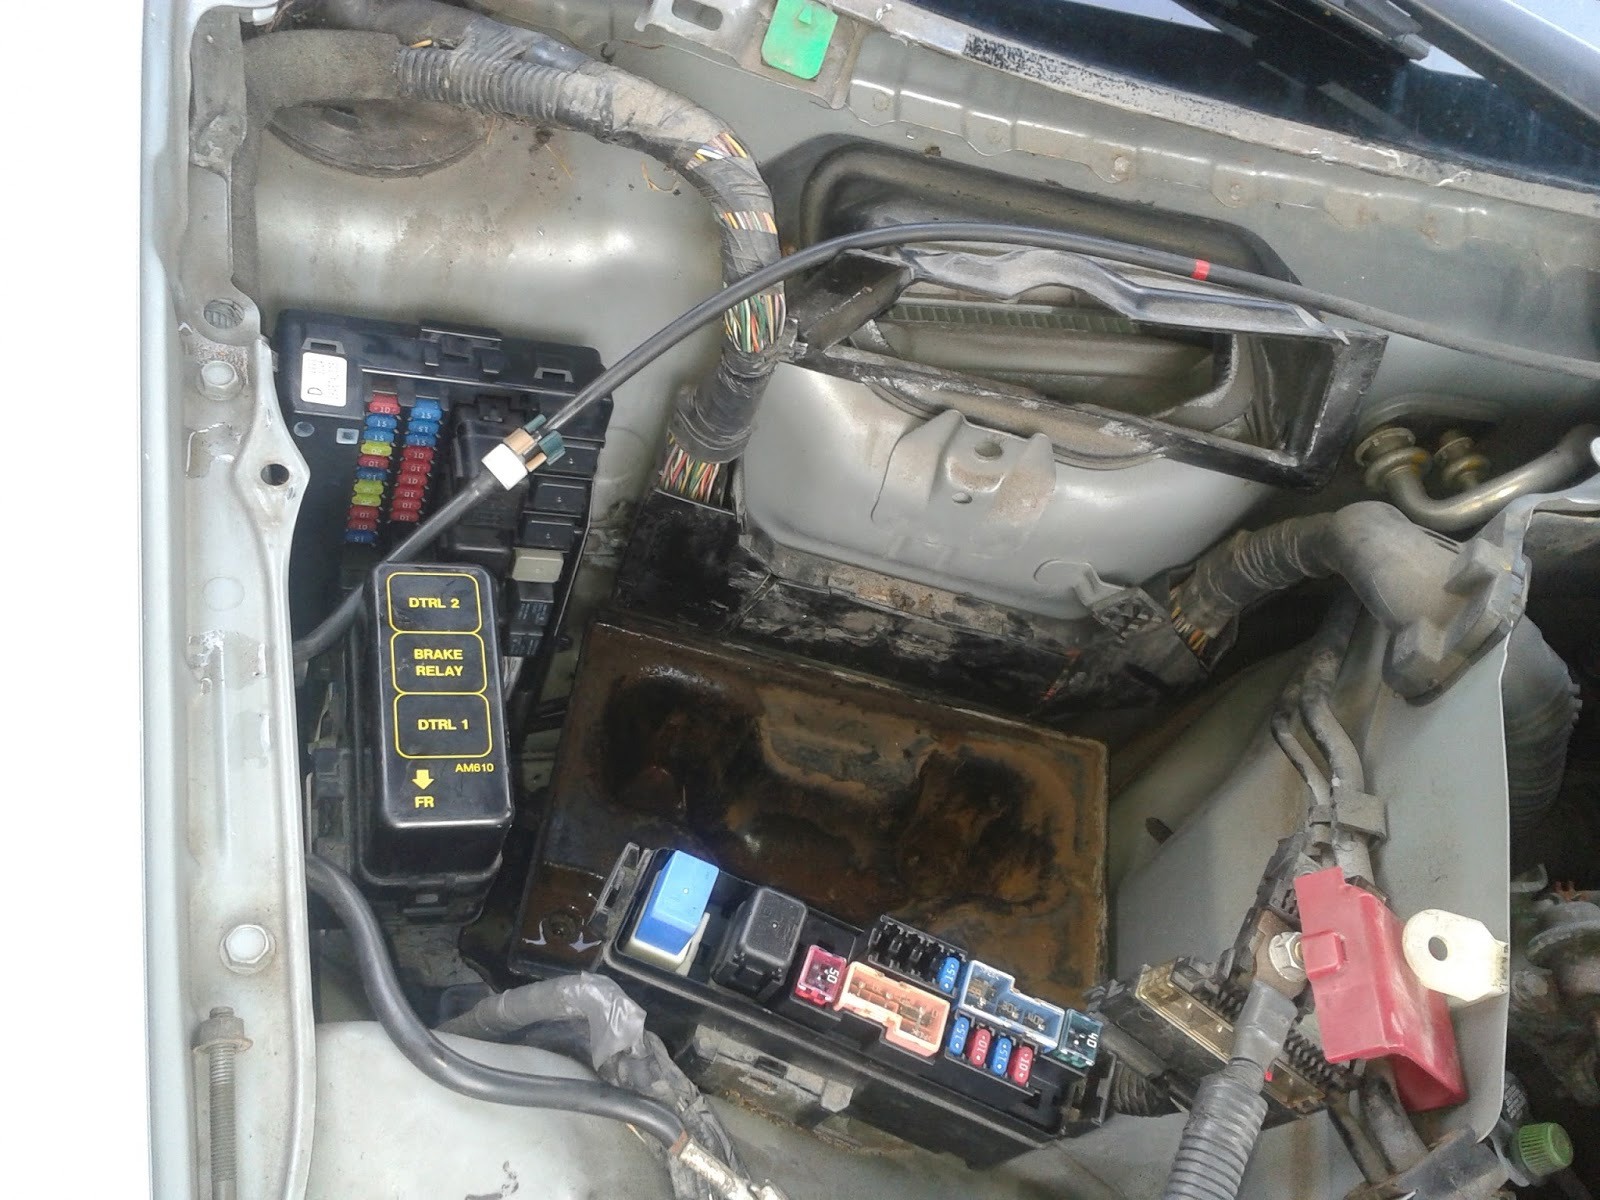 2015 05 27%2B18.55.50 zf inifiniti g35 2003 wet ipdm issue, how to fix it 2005 infiniti g35 fuse box location at crackthecode.co